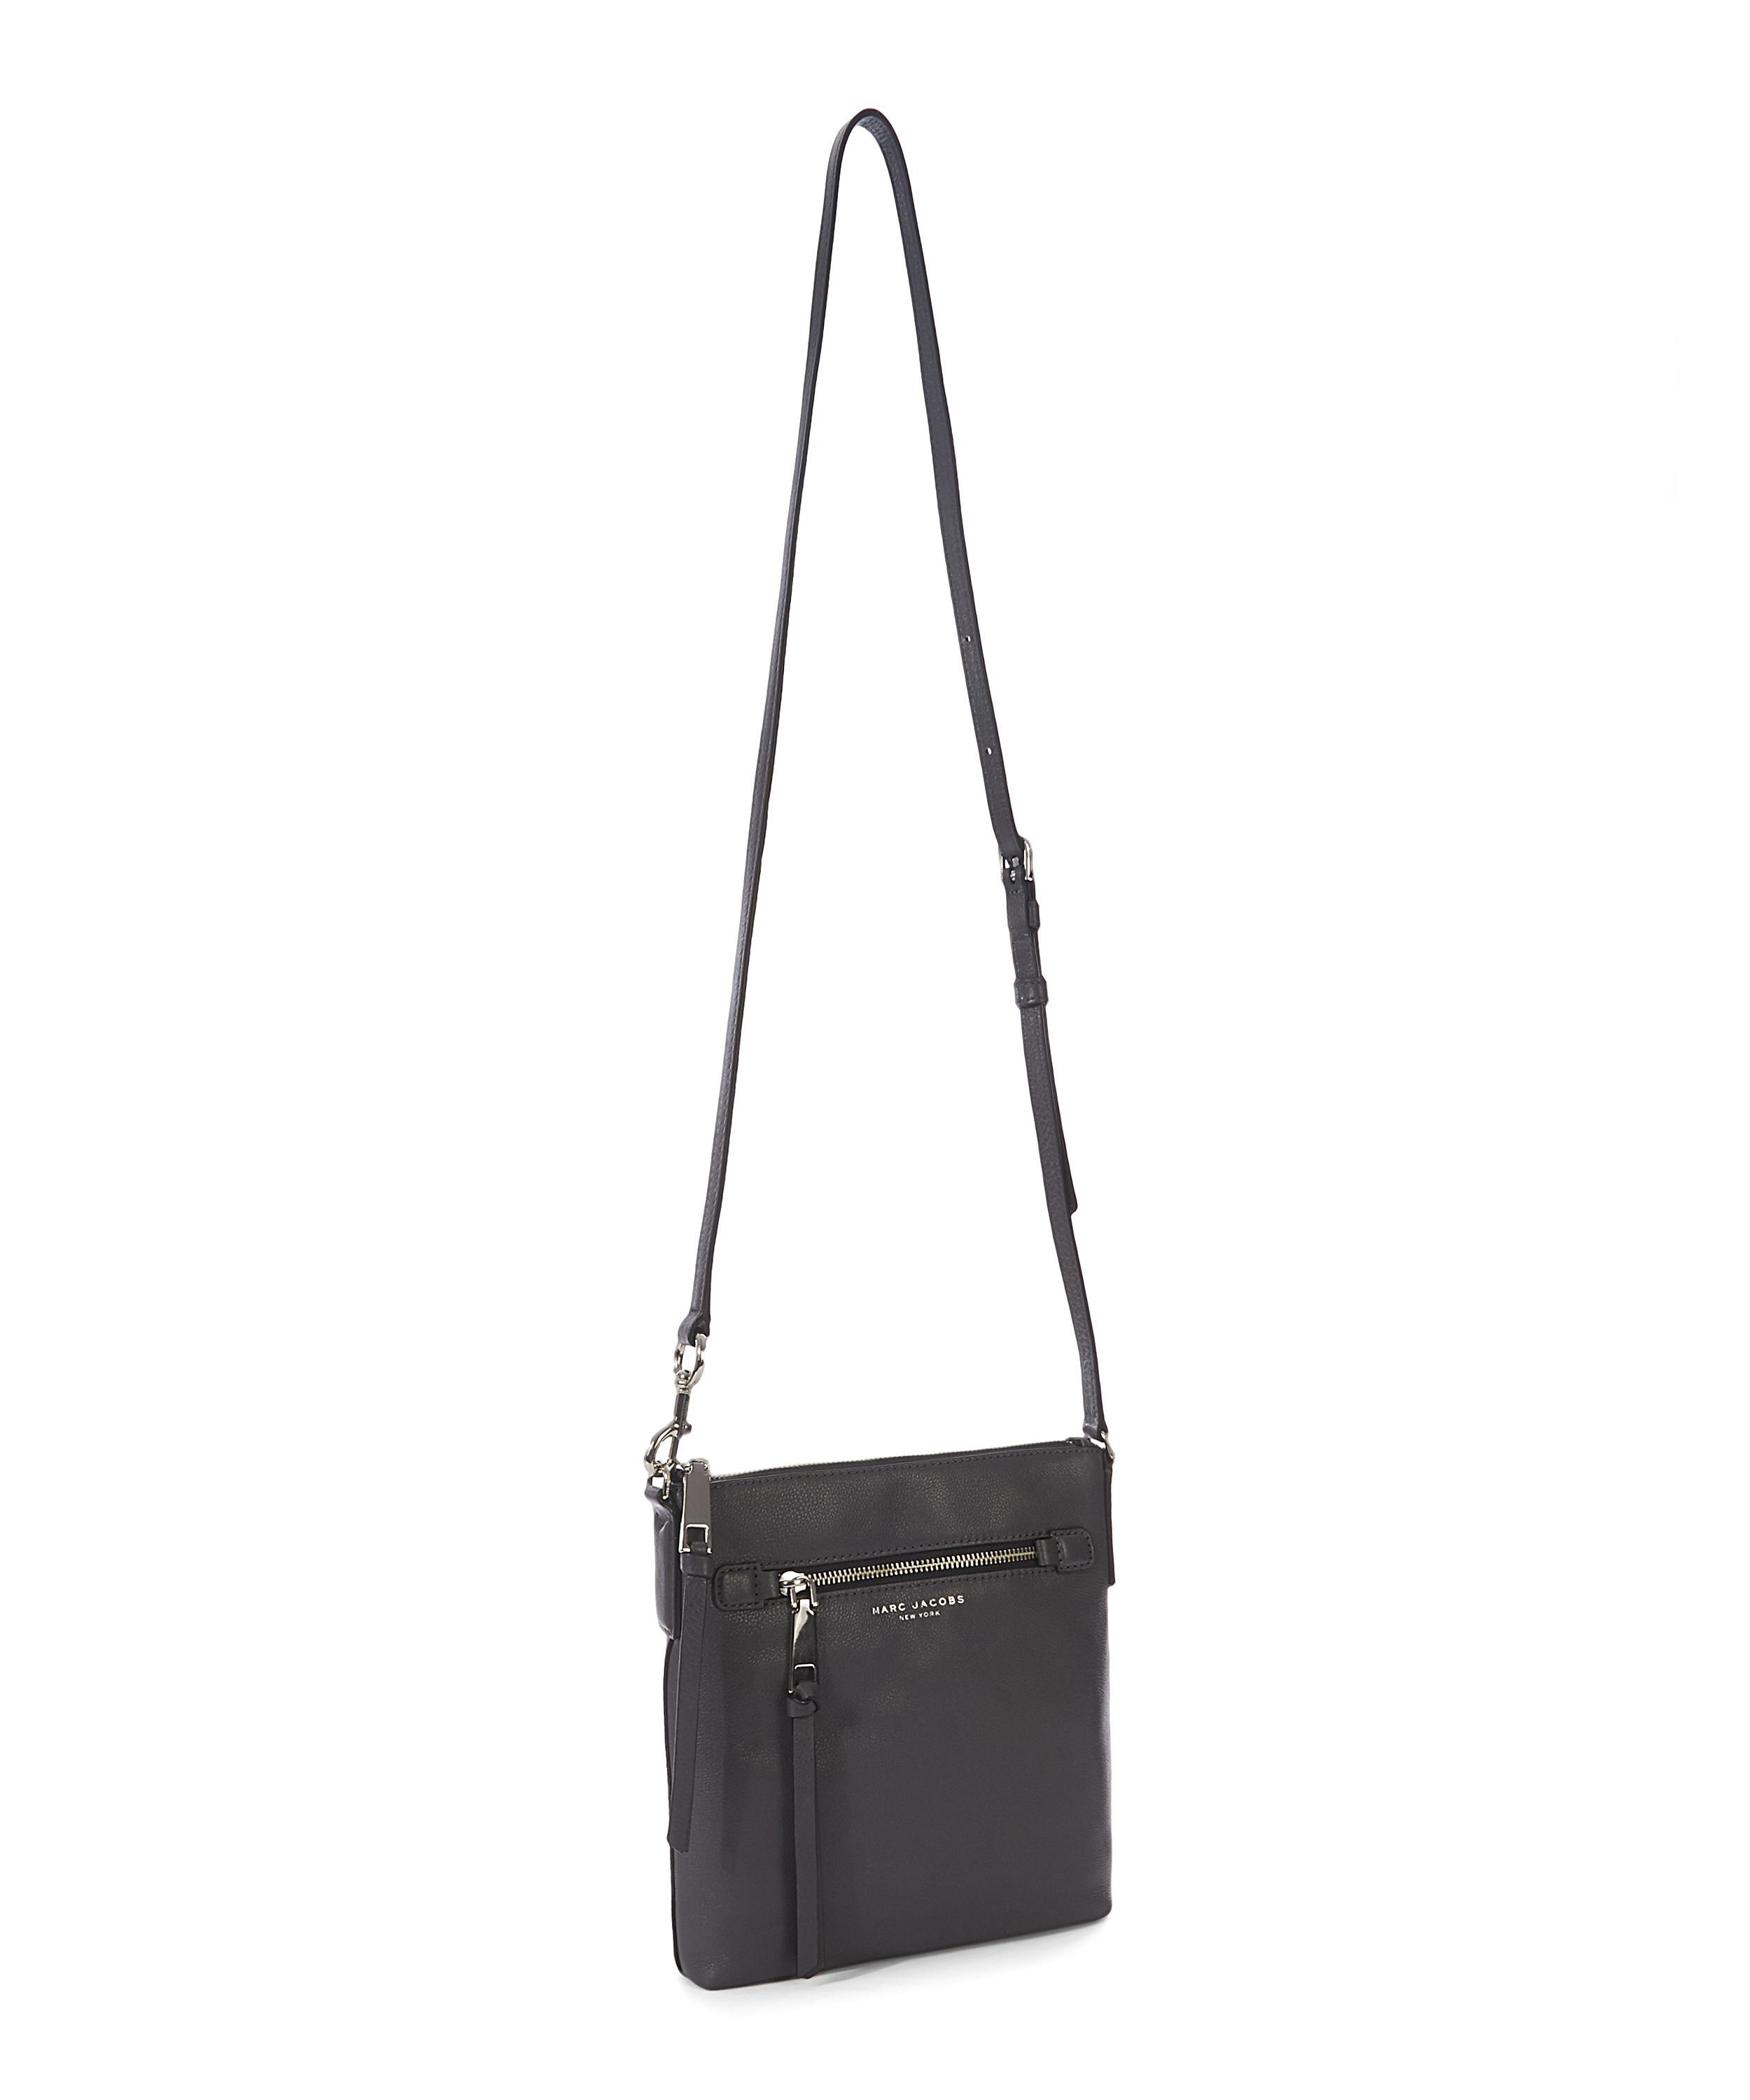 Marc Jacobs Leather Recruit North-south Crossbody Bag in Black